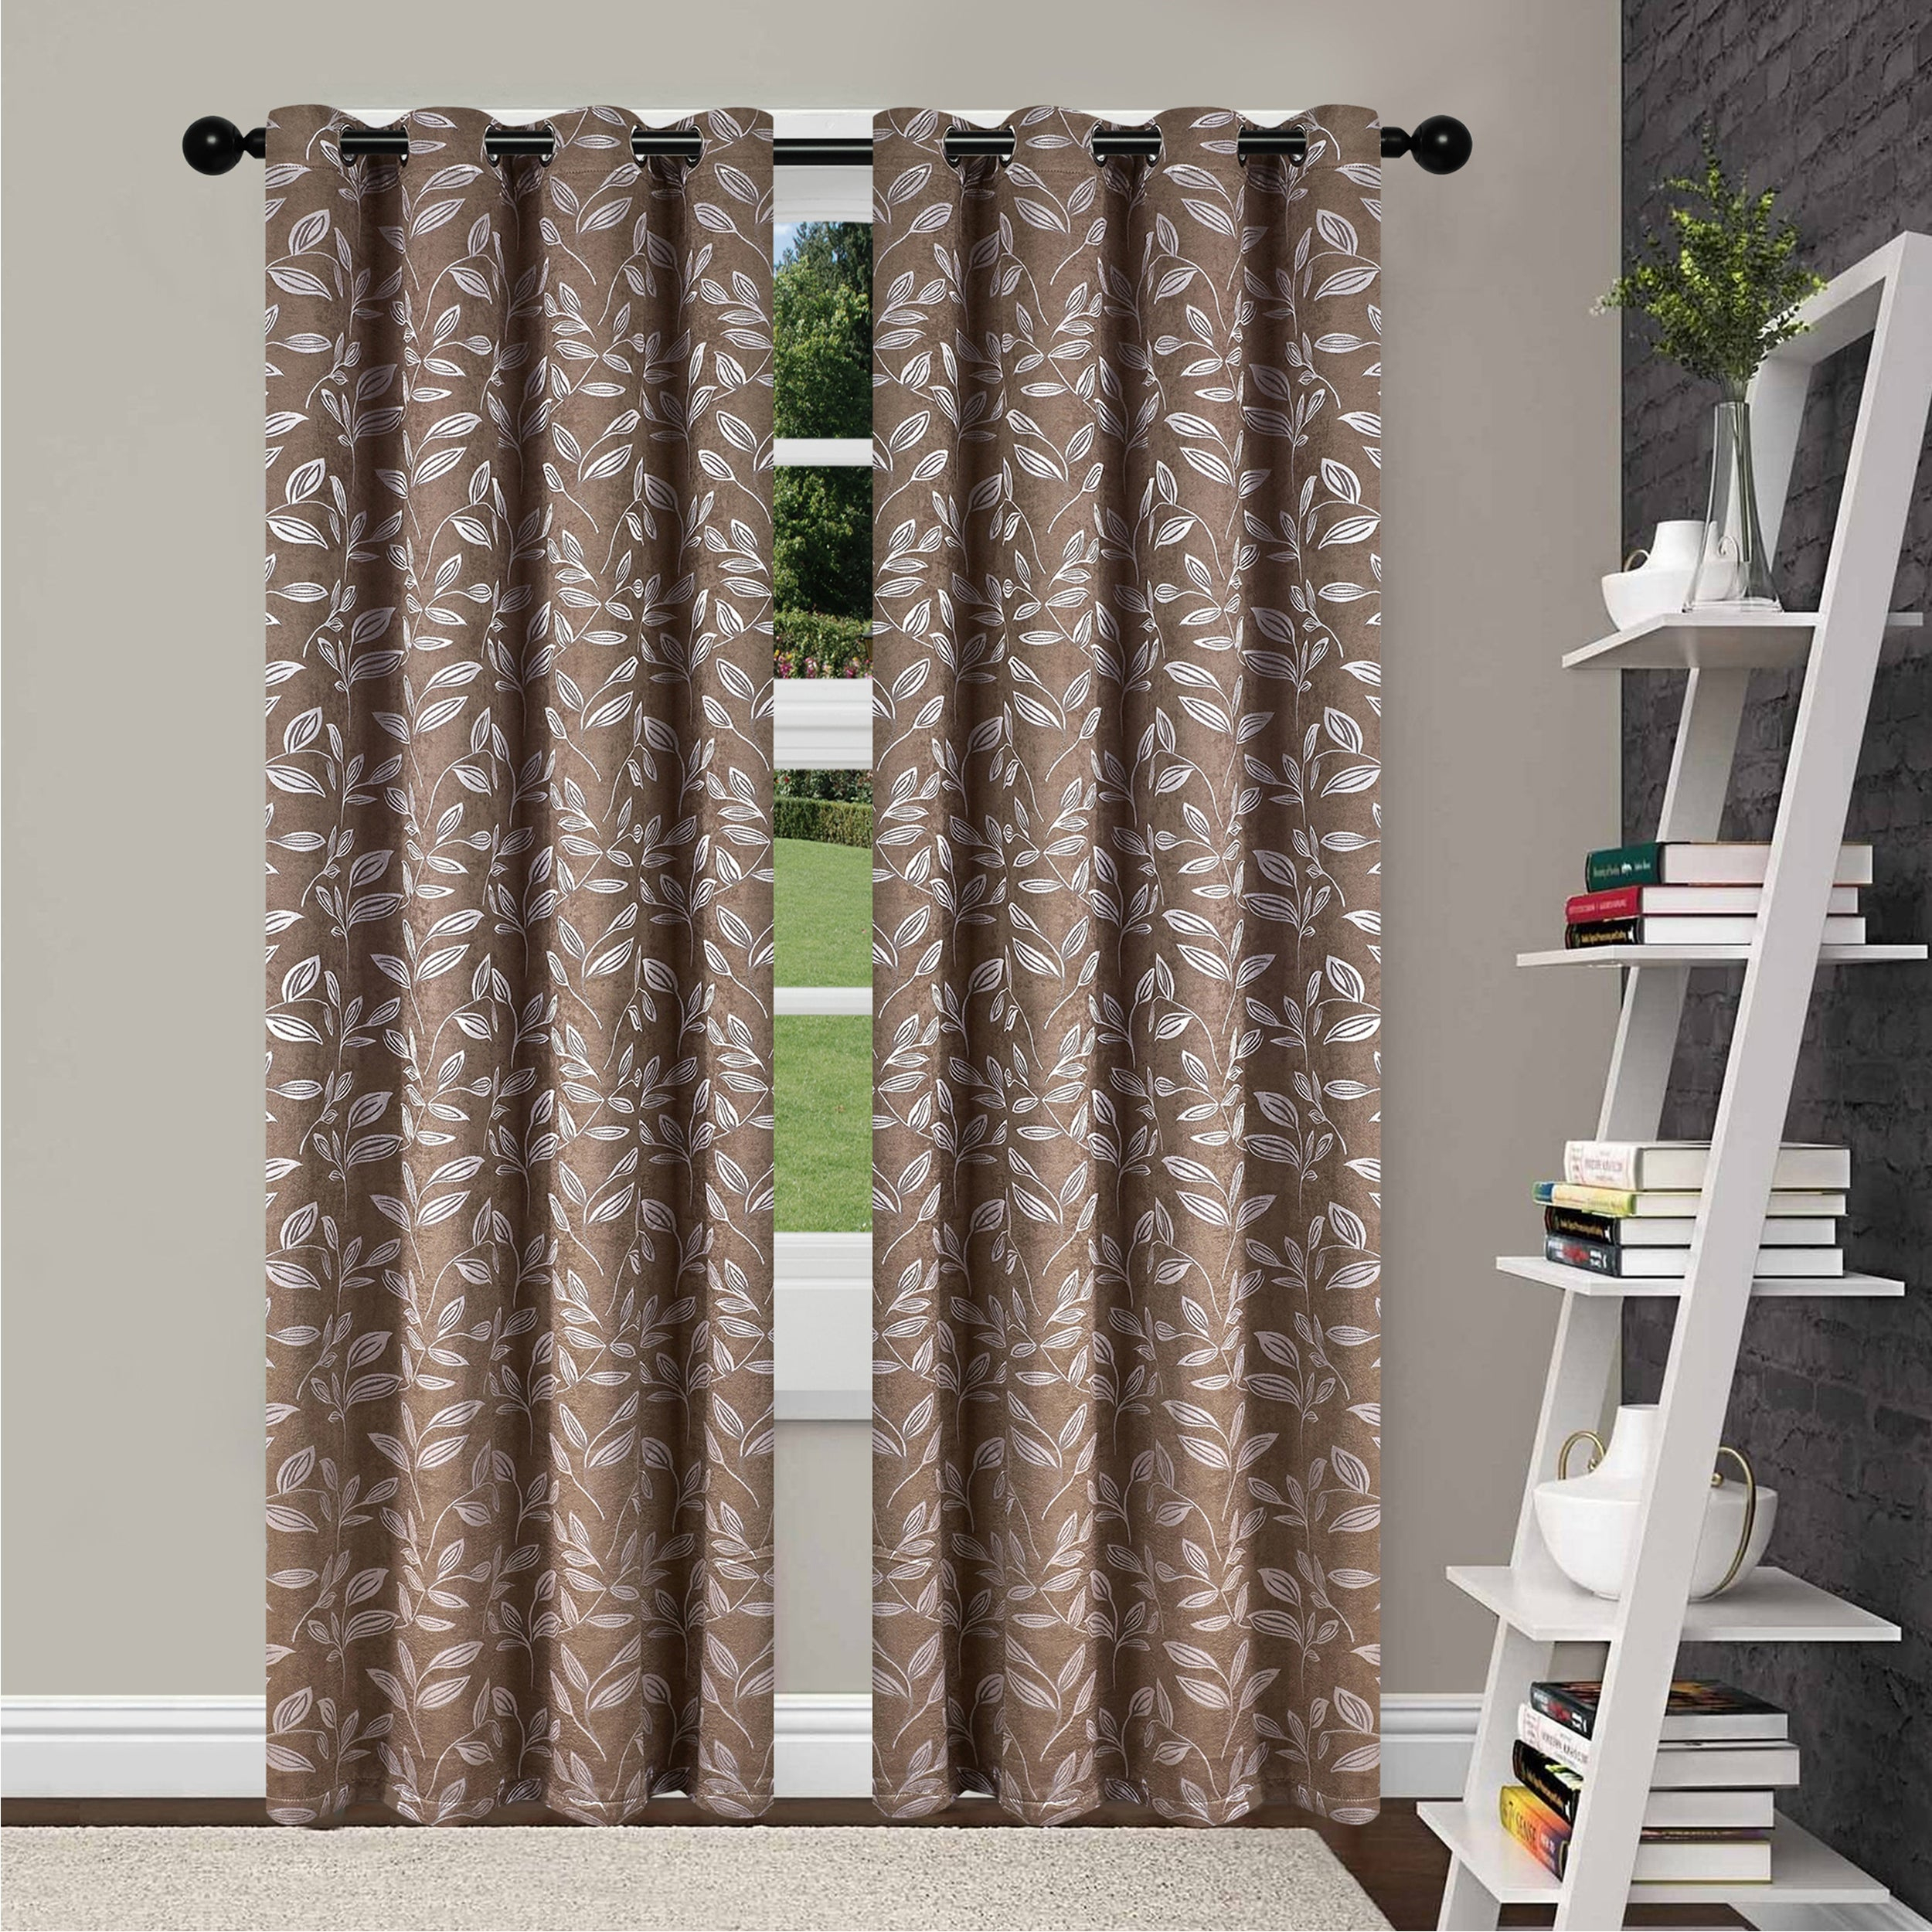 Superior Leaves Insulated Thermal Blackout Grommet Curtain Panel Pair In Insulated Thermal Blackout Curtain Panel Pairs (View 15 of 20)